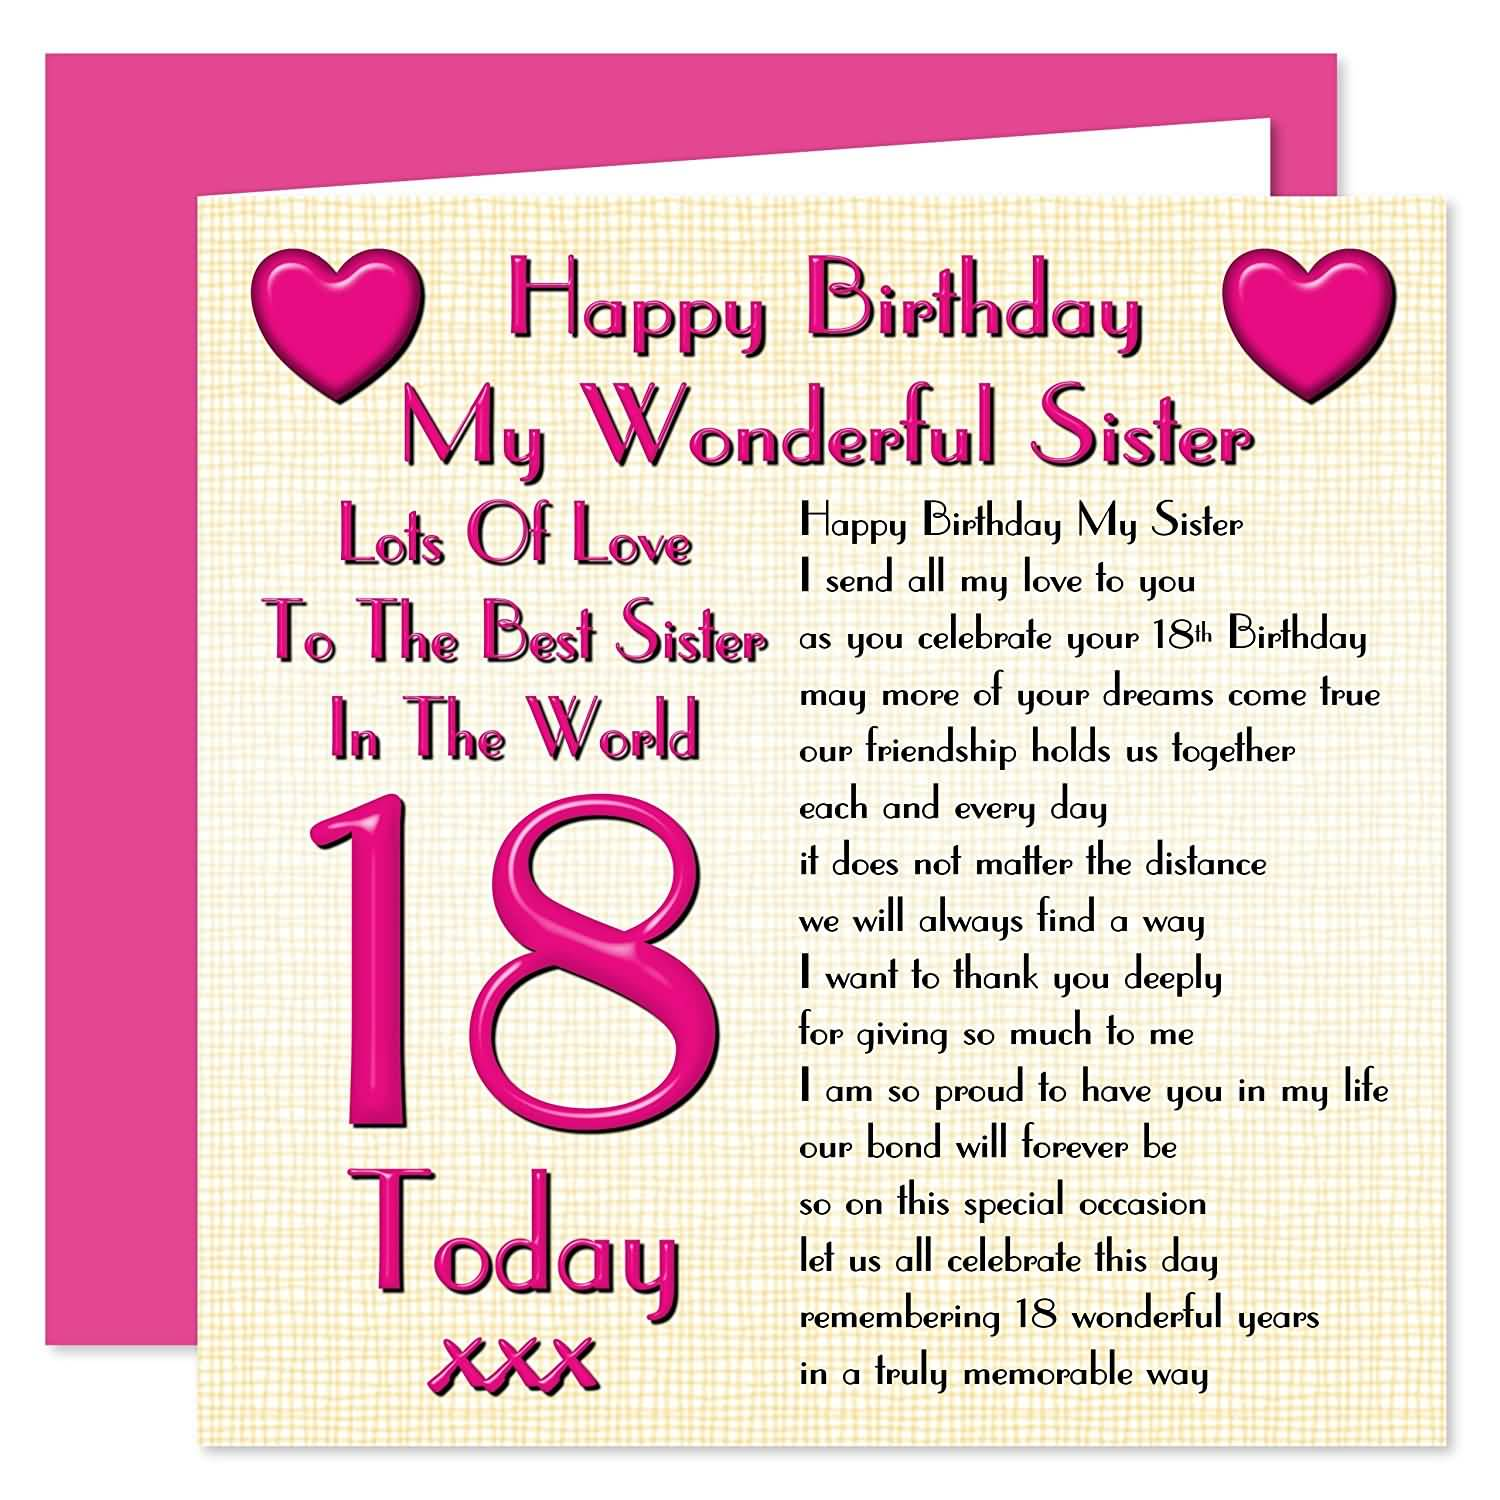 Mind Blowing Happy 18th Birthday Message For Sharing